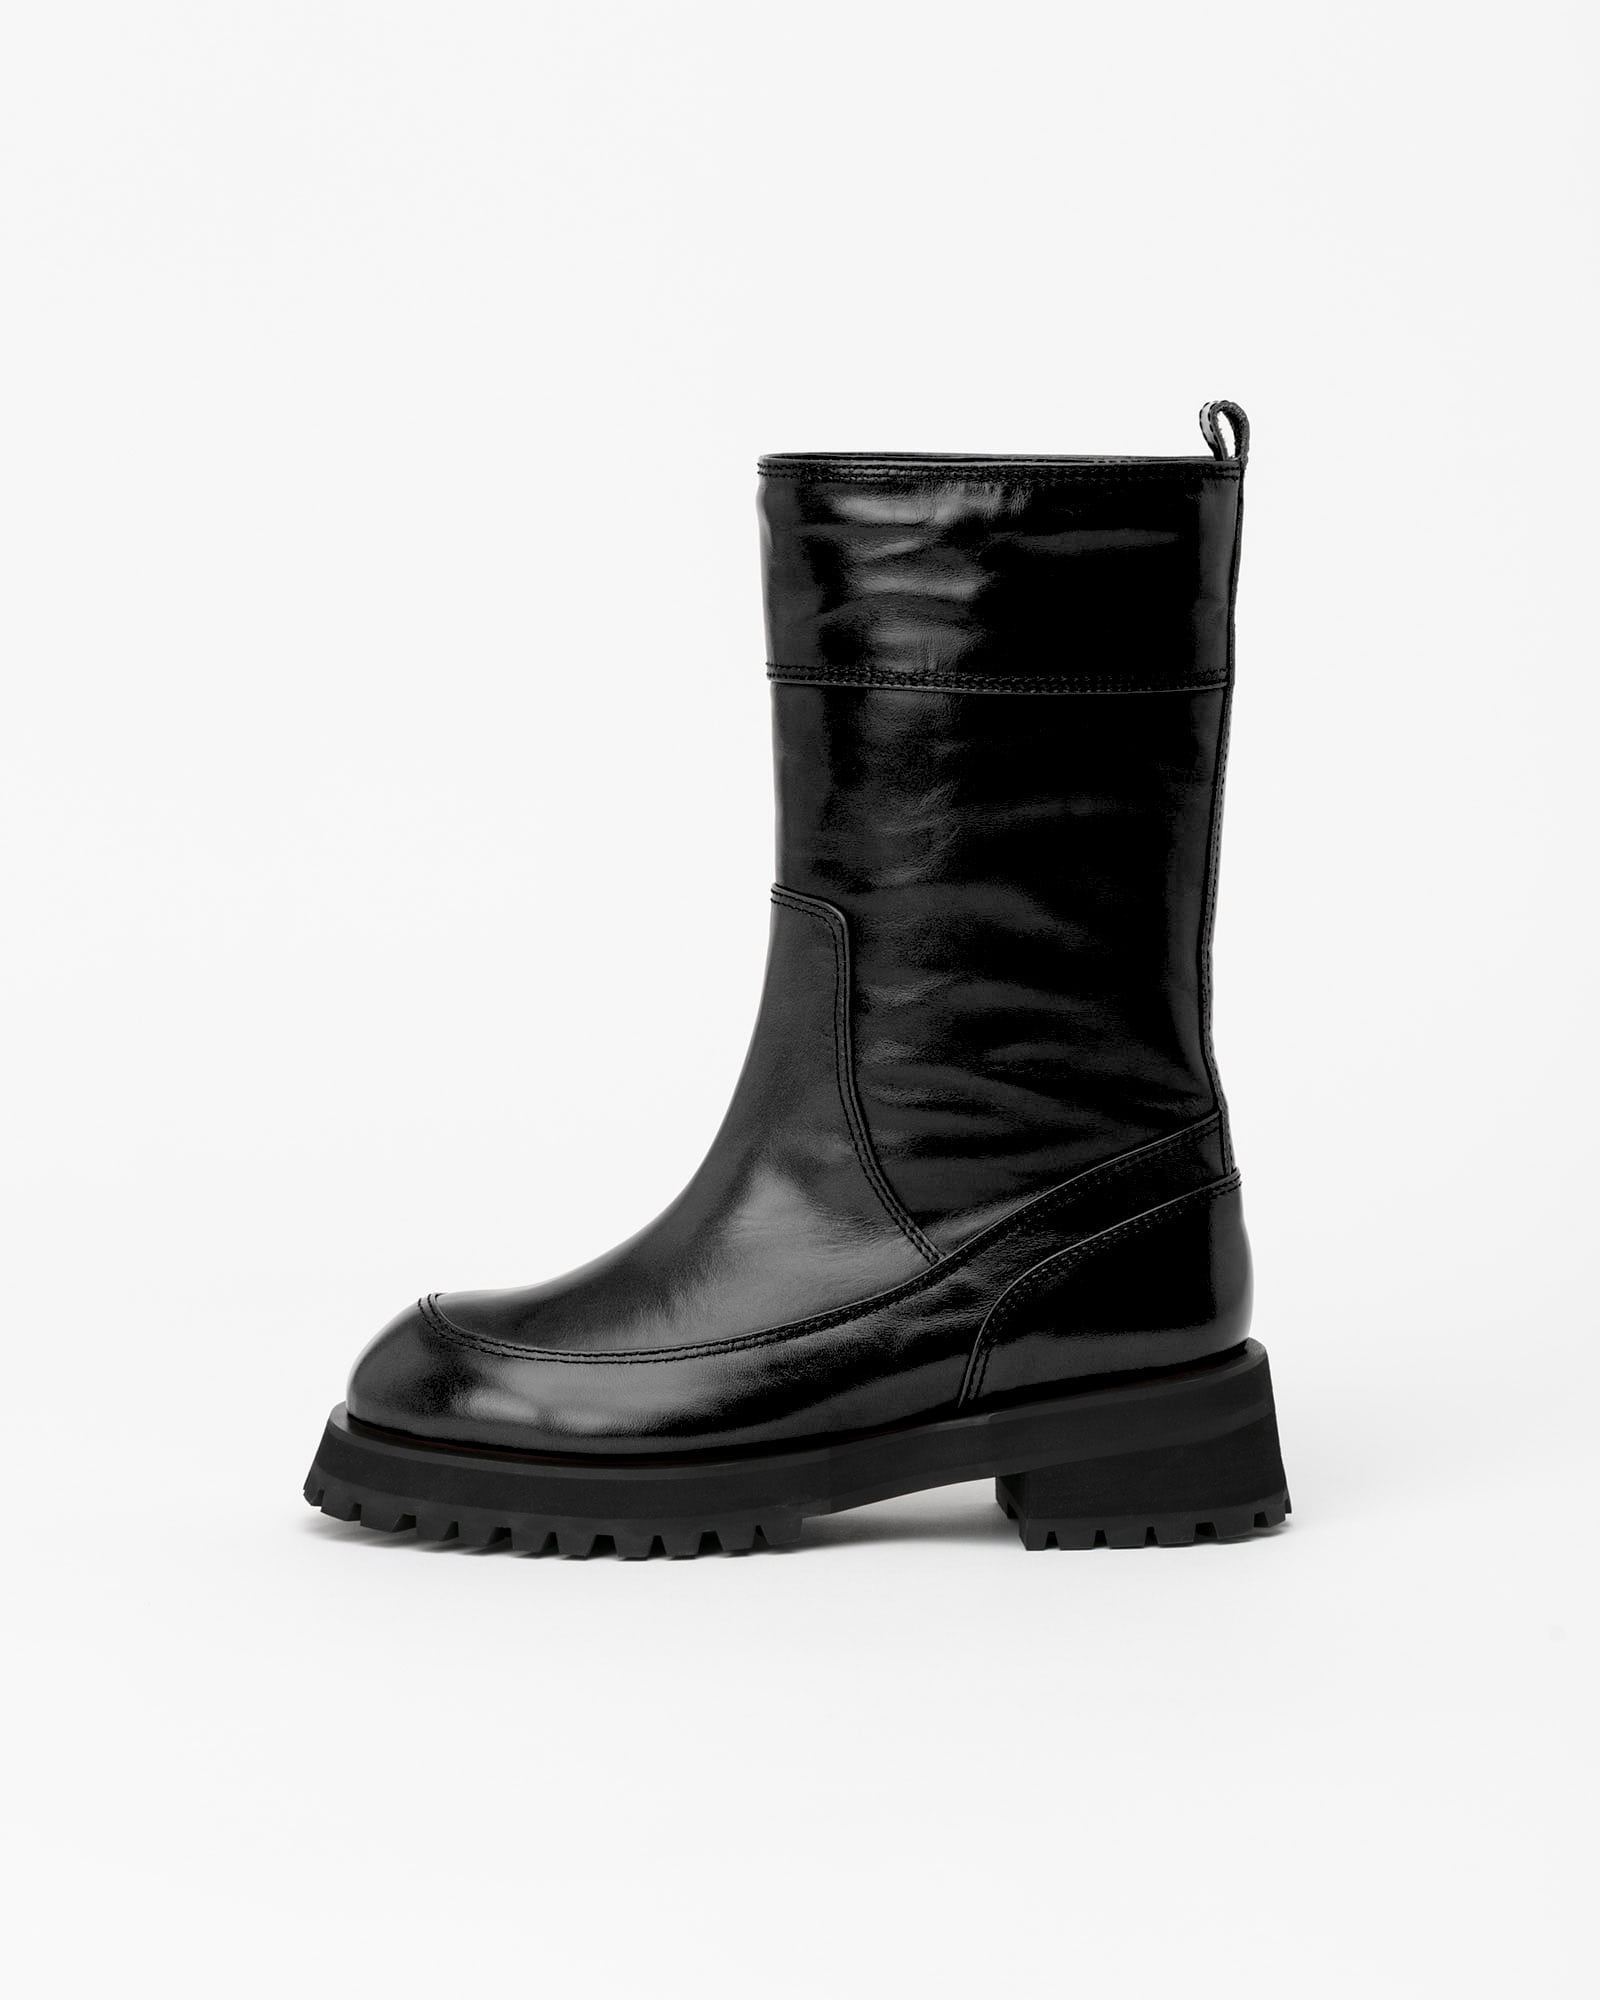 Brica Fur Lining Boots in Textured Black